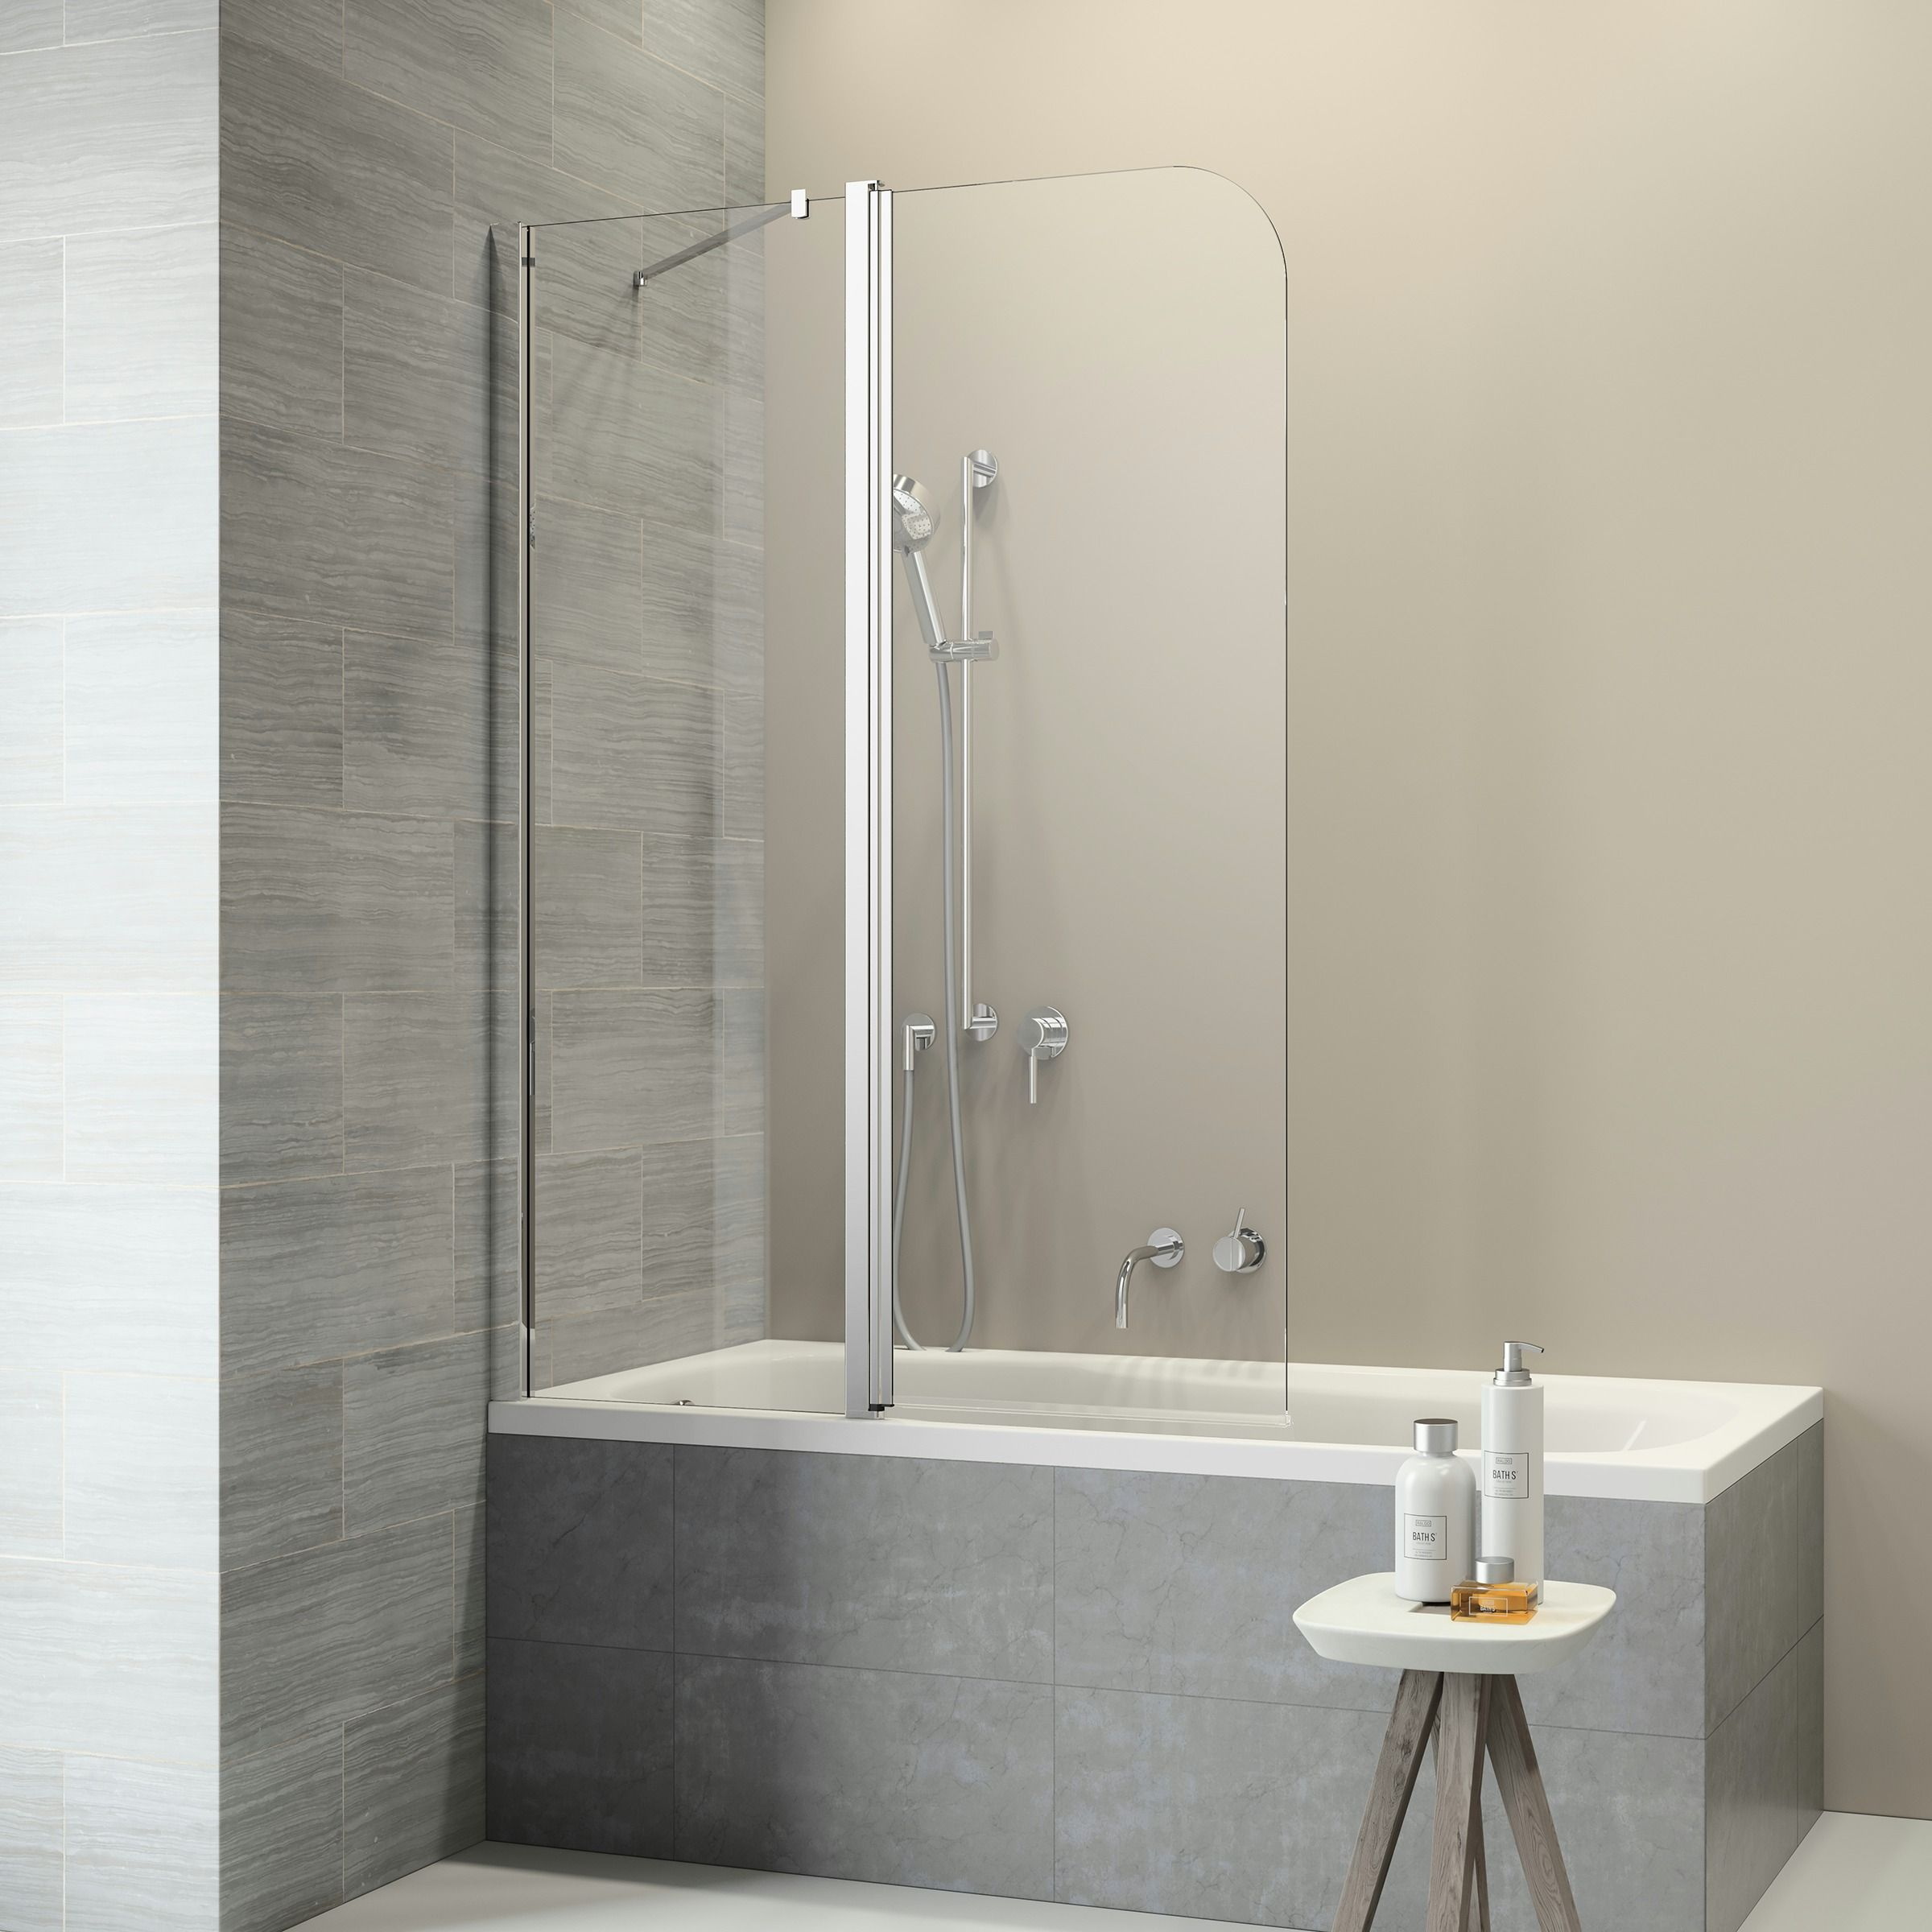 Badscherm 2 Delig.Get Wet Badwand Code L 2 Delig 130x152 Cm Products In 2019